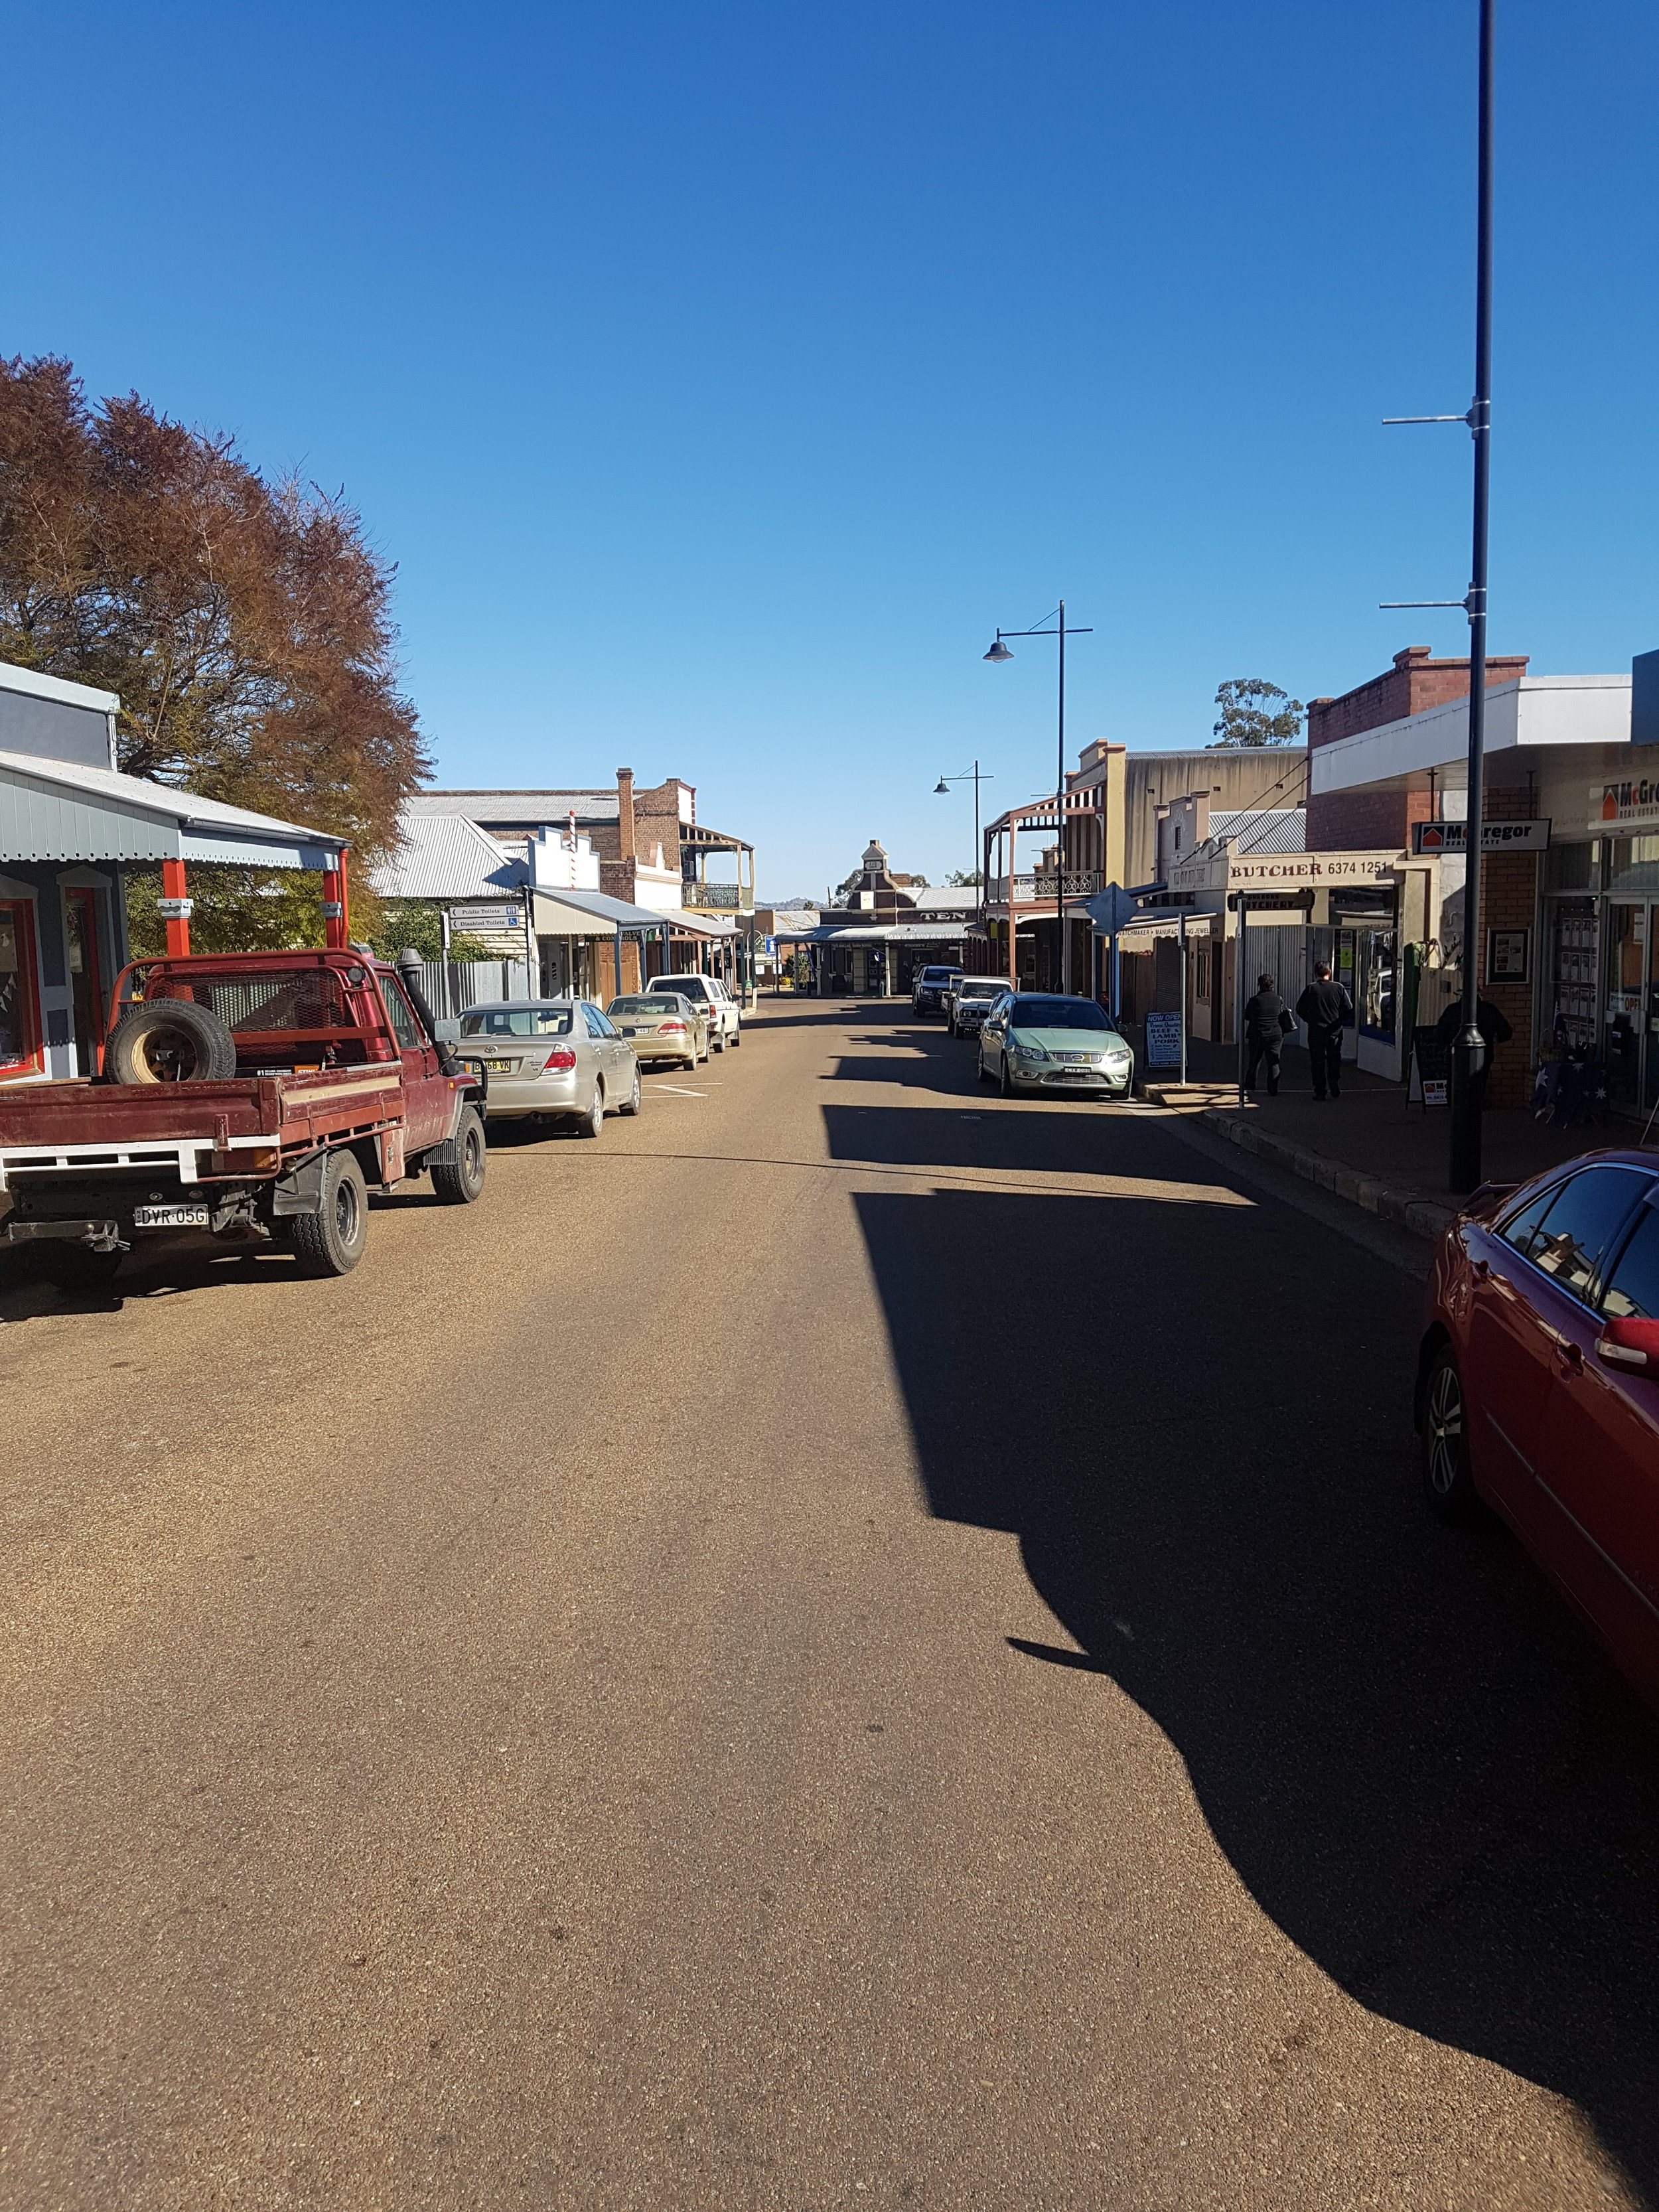 Yeoval to Willow Tree via Wellington, Gulgong and Scone. 5 stars Gulgong main street. Great country, gotta say...